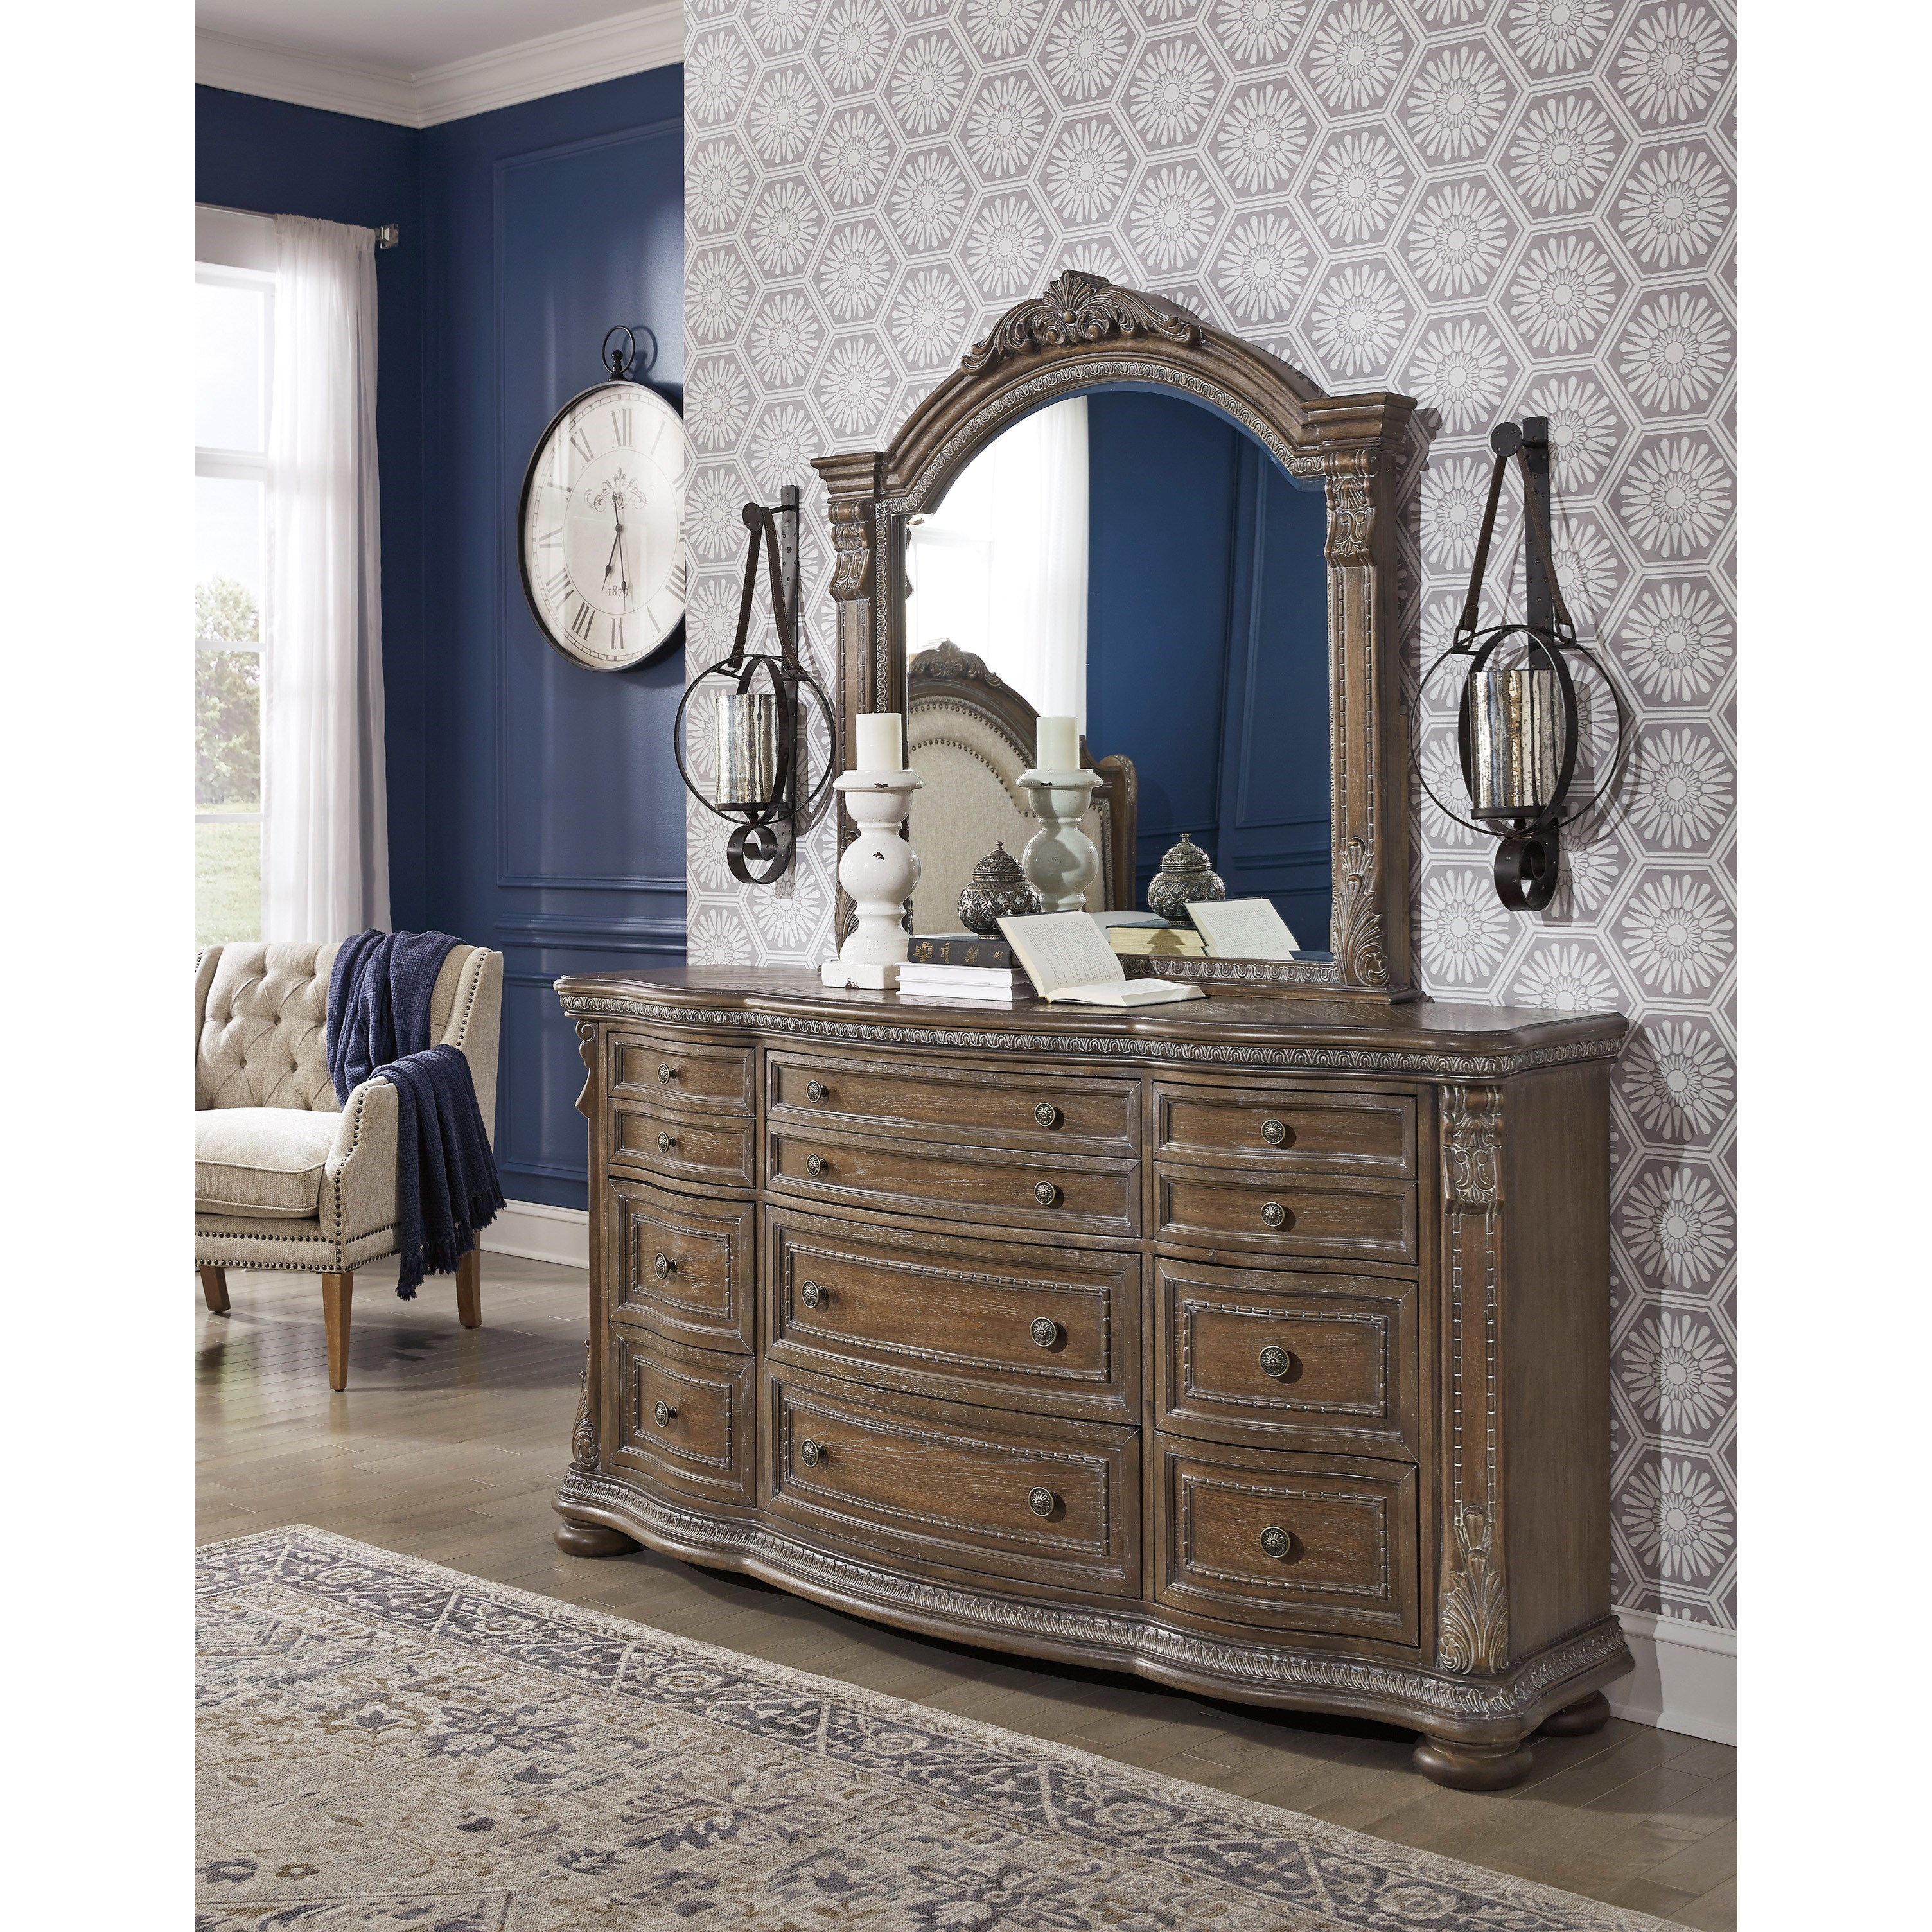 Ashley Furniture Current Sales Ad: Signature Design By Ashley Charmond Bedroom Mirror